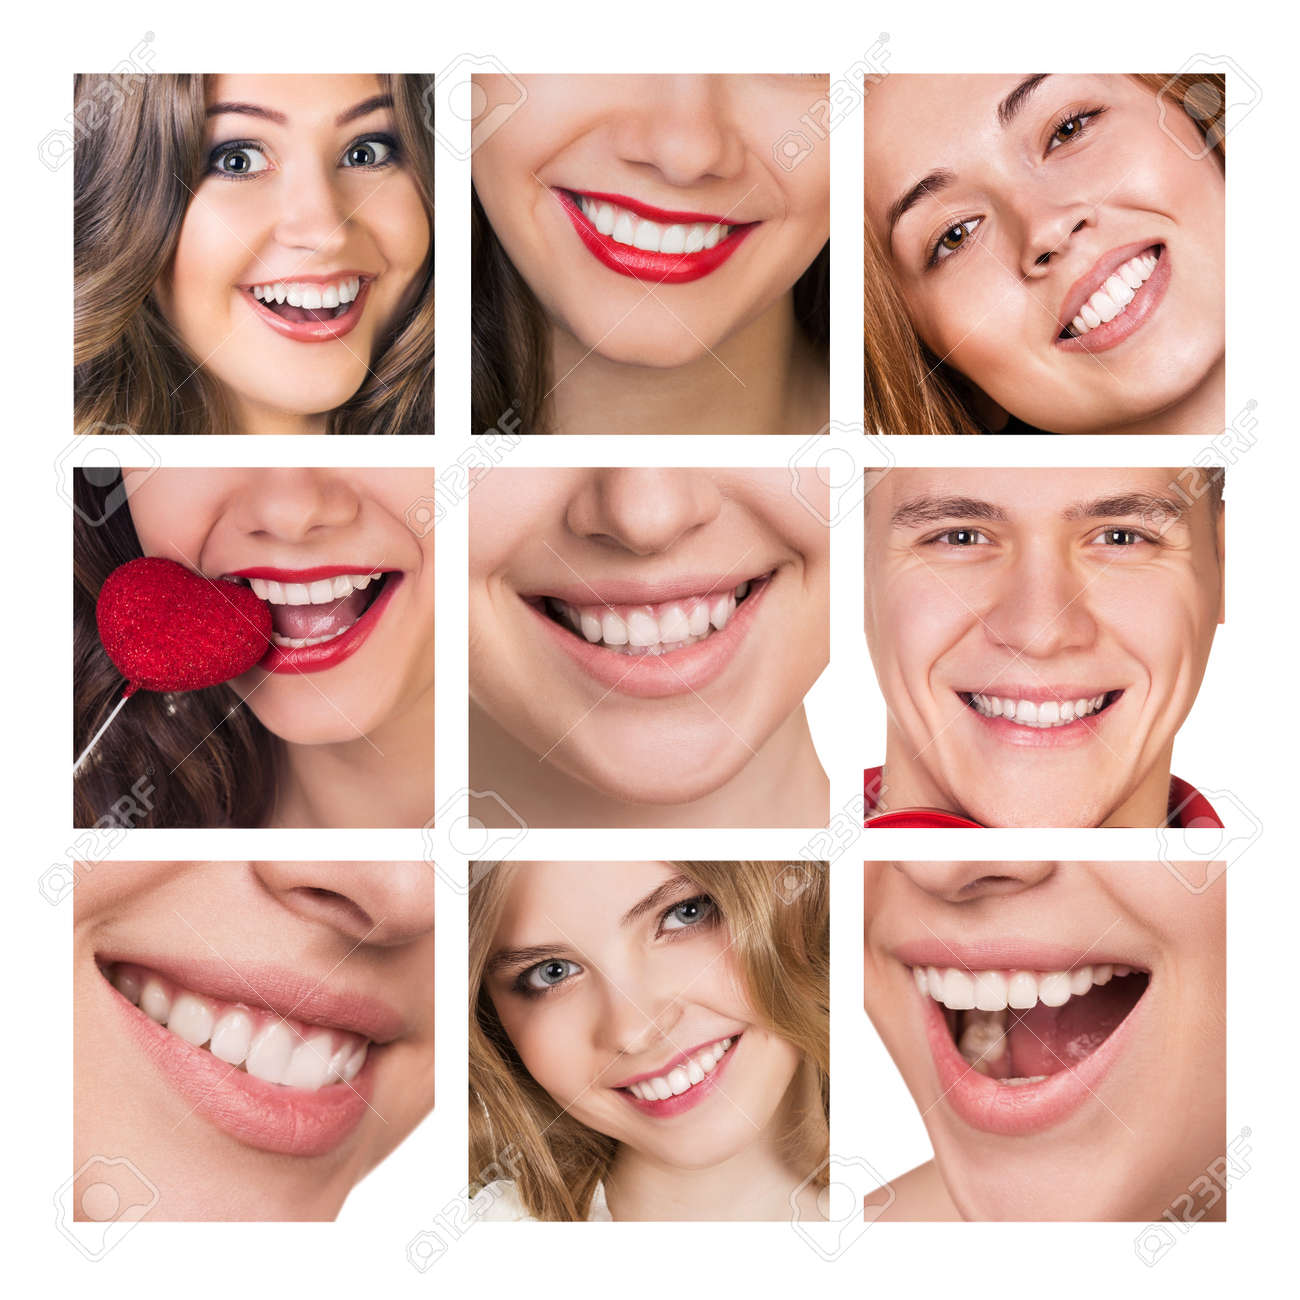 Smiling happy people with healthy teeth. Dental health. Collage. - 45246181